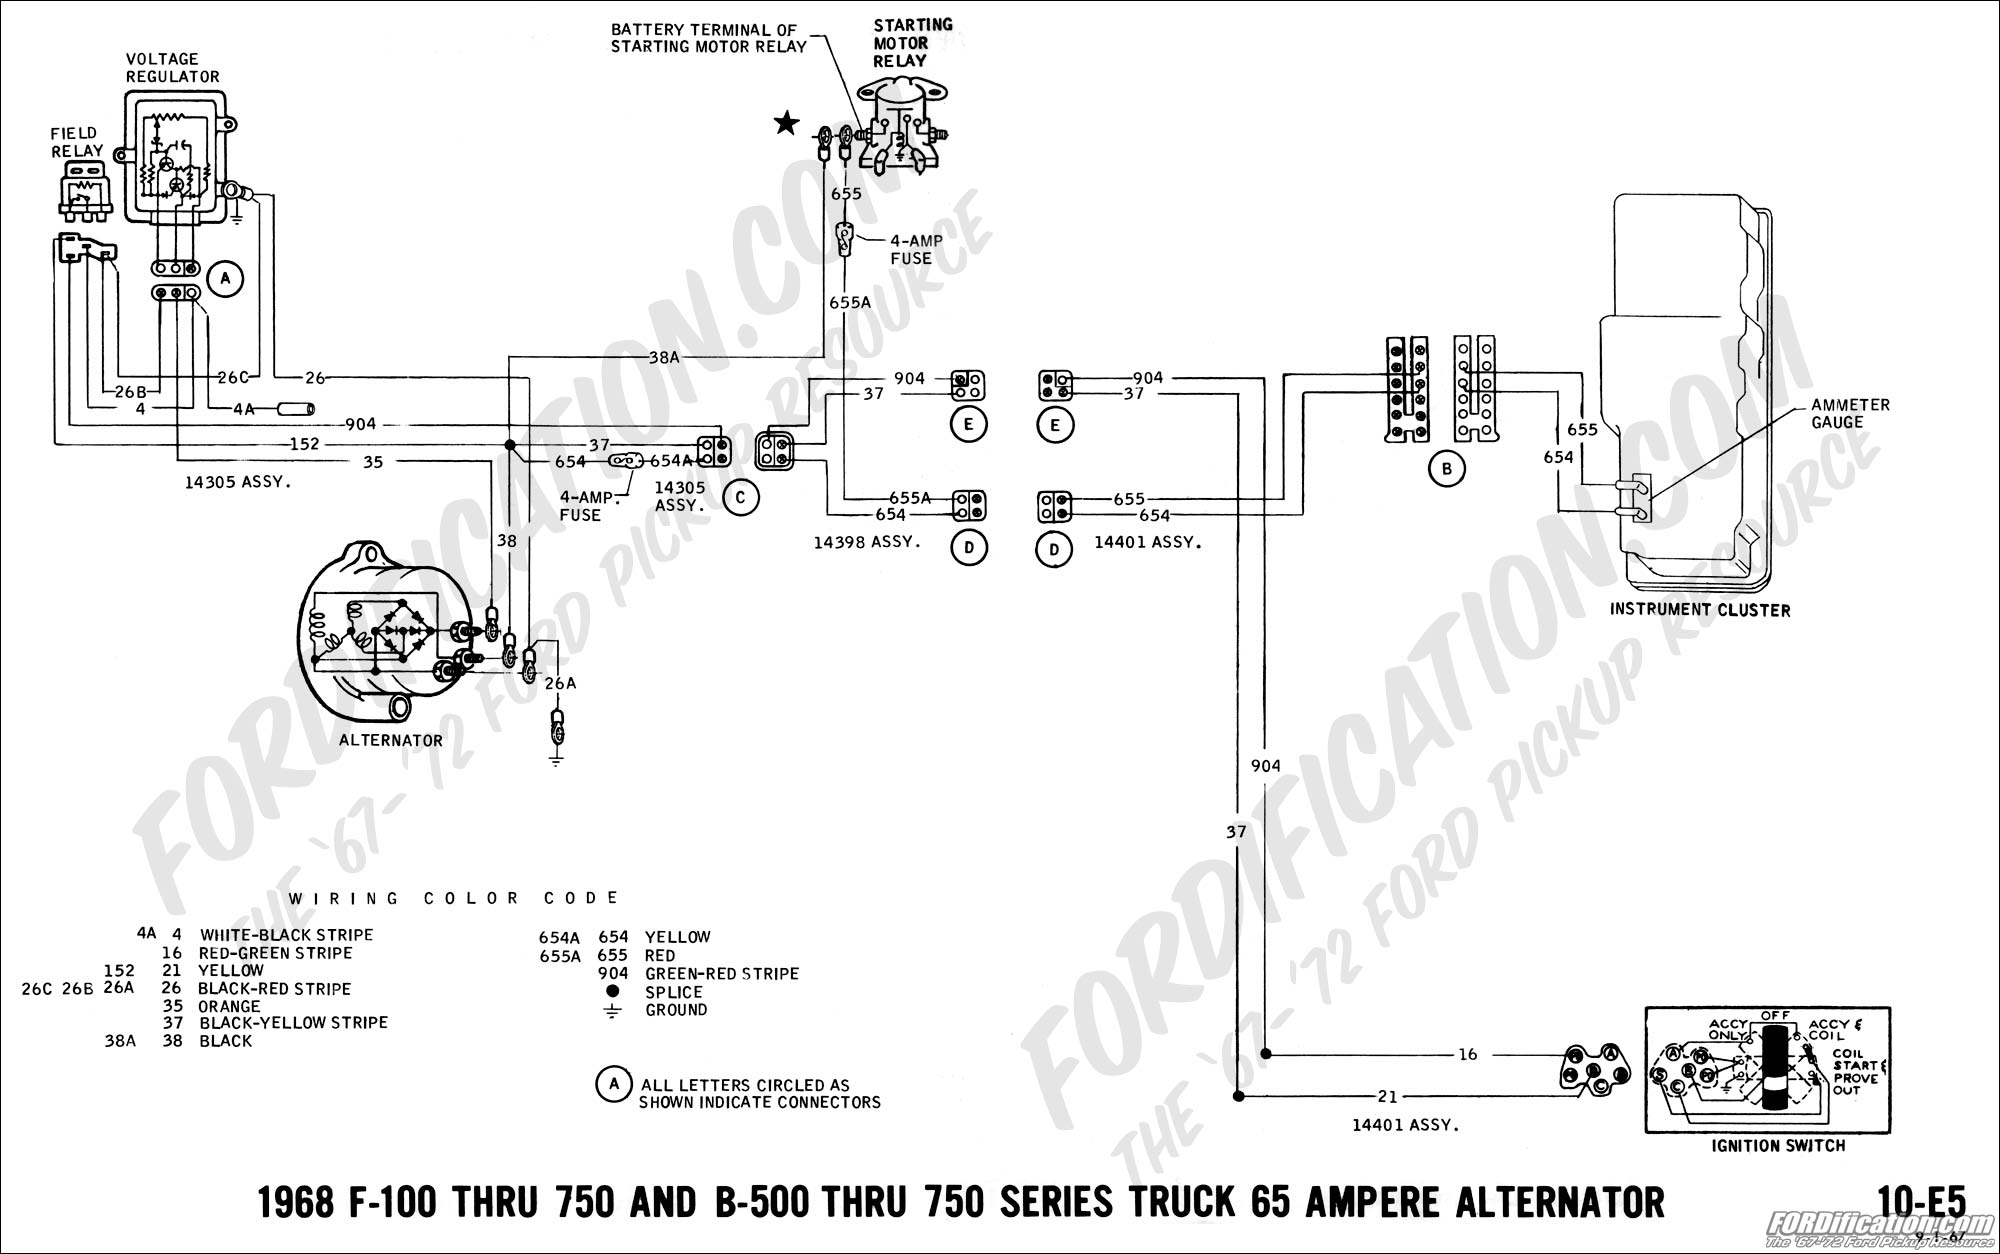 68 07 69 f100 wiring diagram 1973 ford f100 wiring diagram \u2022 wiring 1965 ford alternator wiring diagram at eliteediting.co